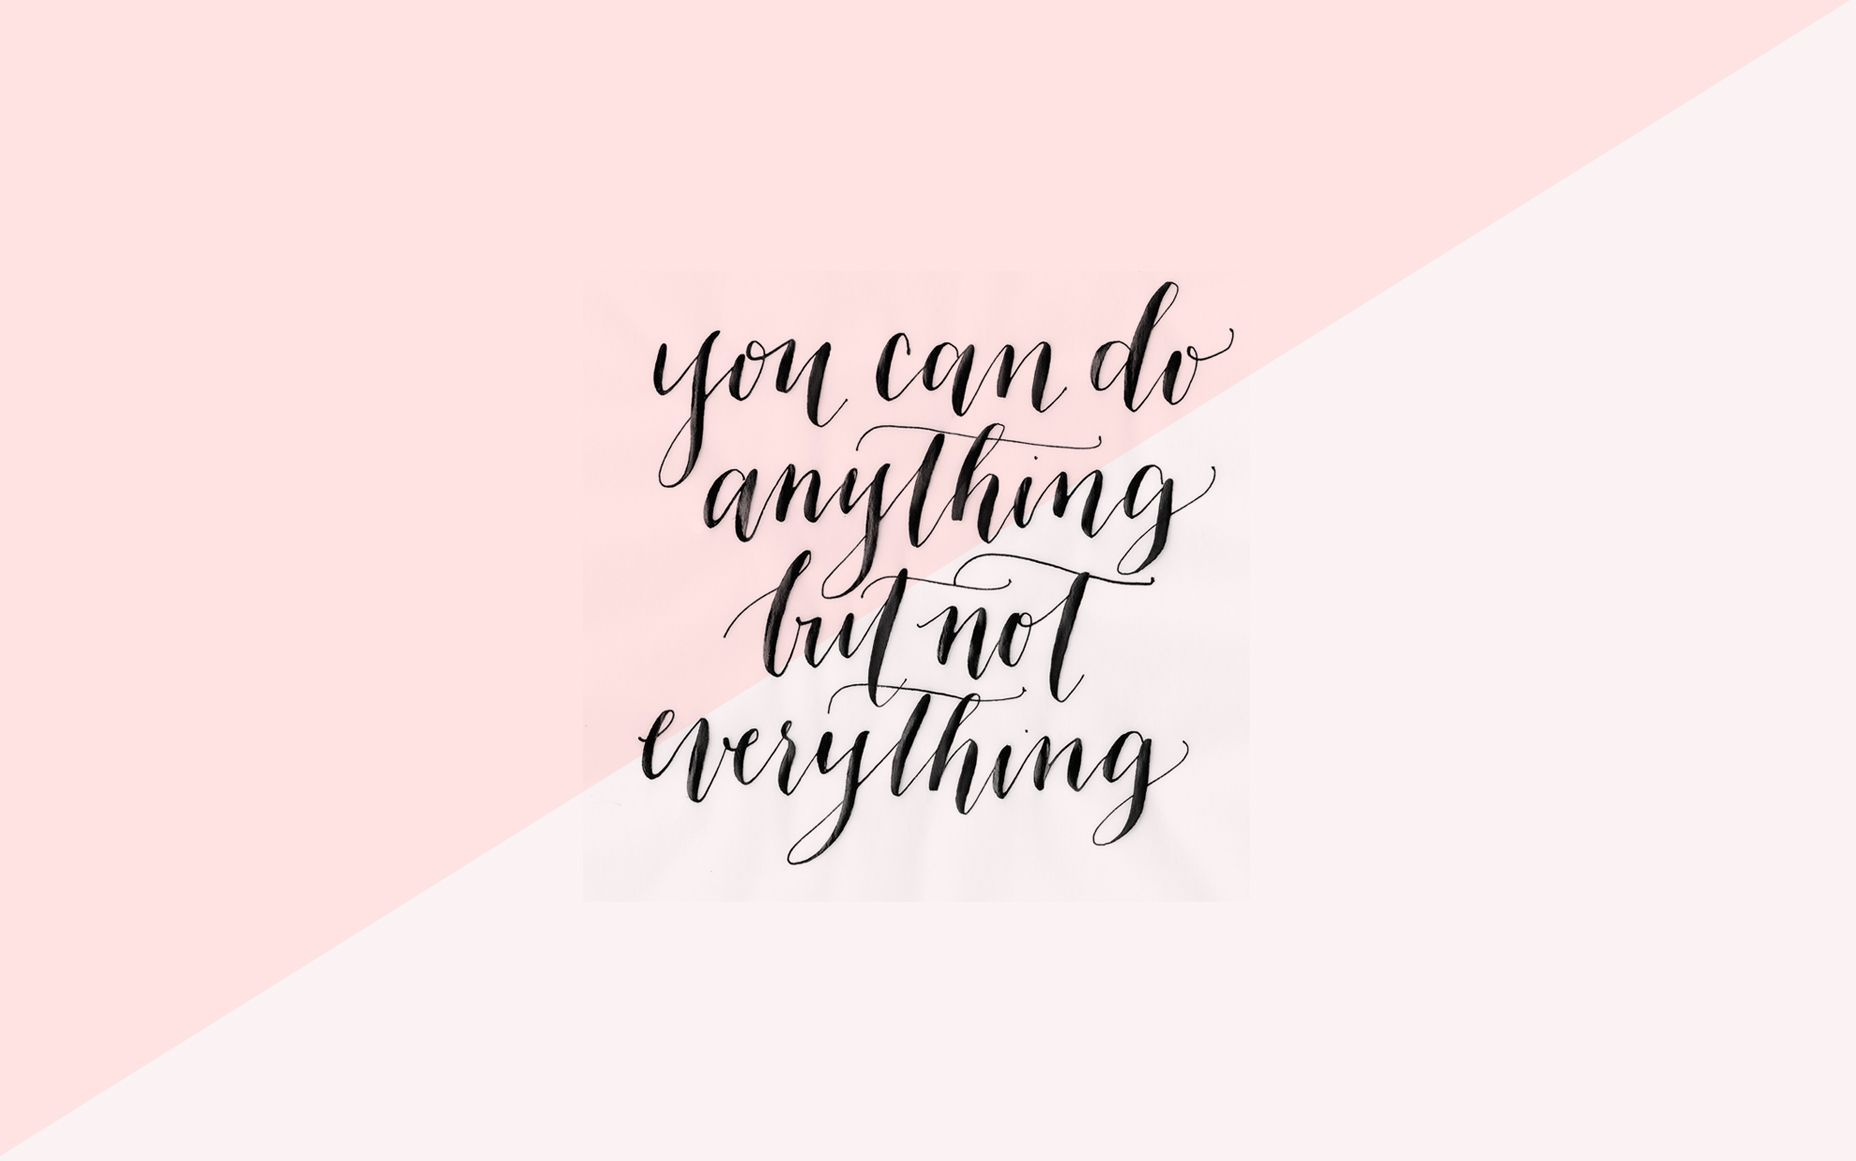 Free Wallpaper Aesthetic Motivational Laptop Quote Tumblr Cute Laptop Wallpaper Quotes Quote Aesthetic Wallpaper Quotes